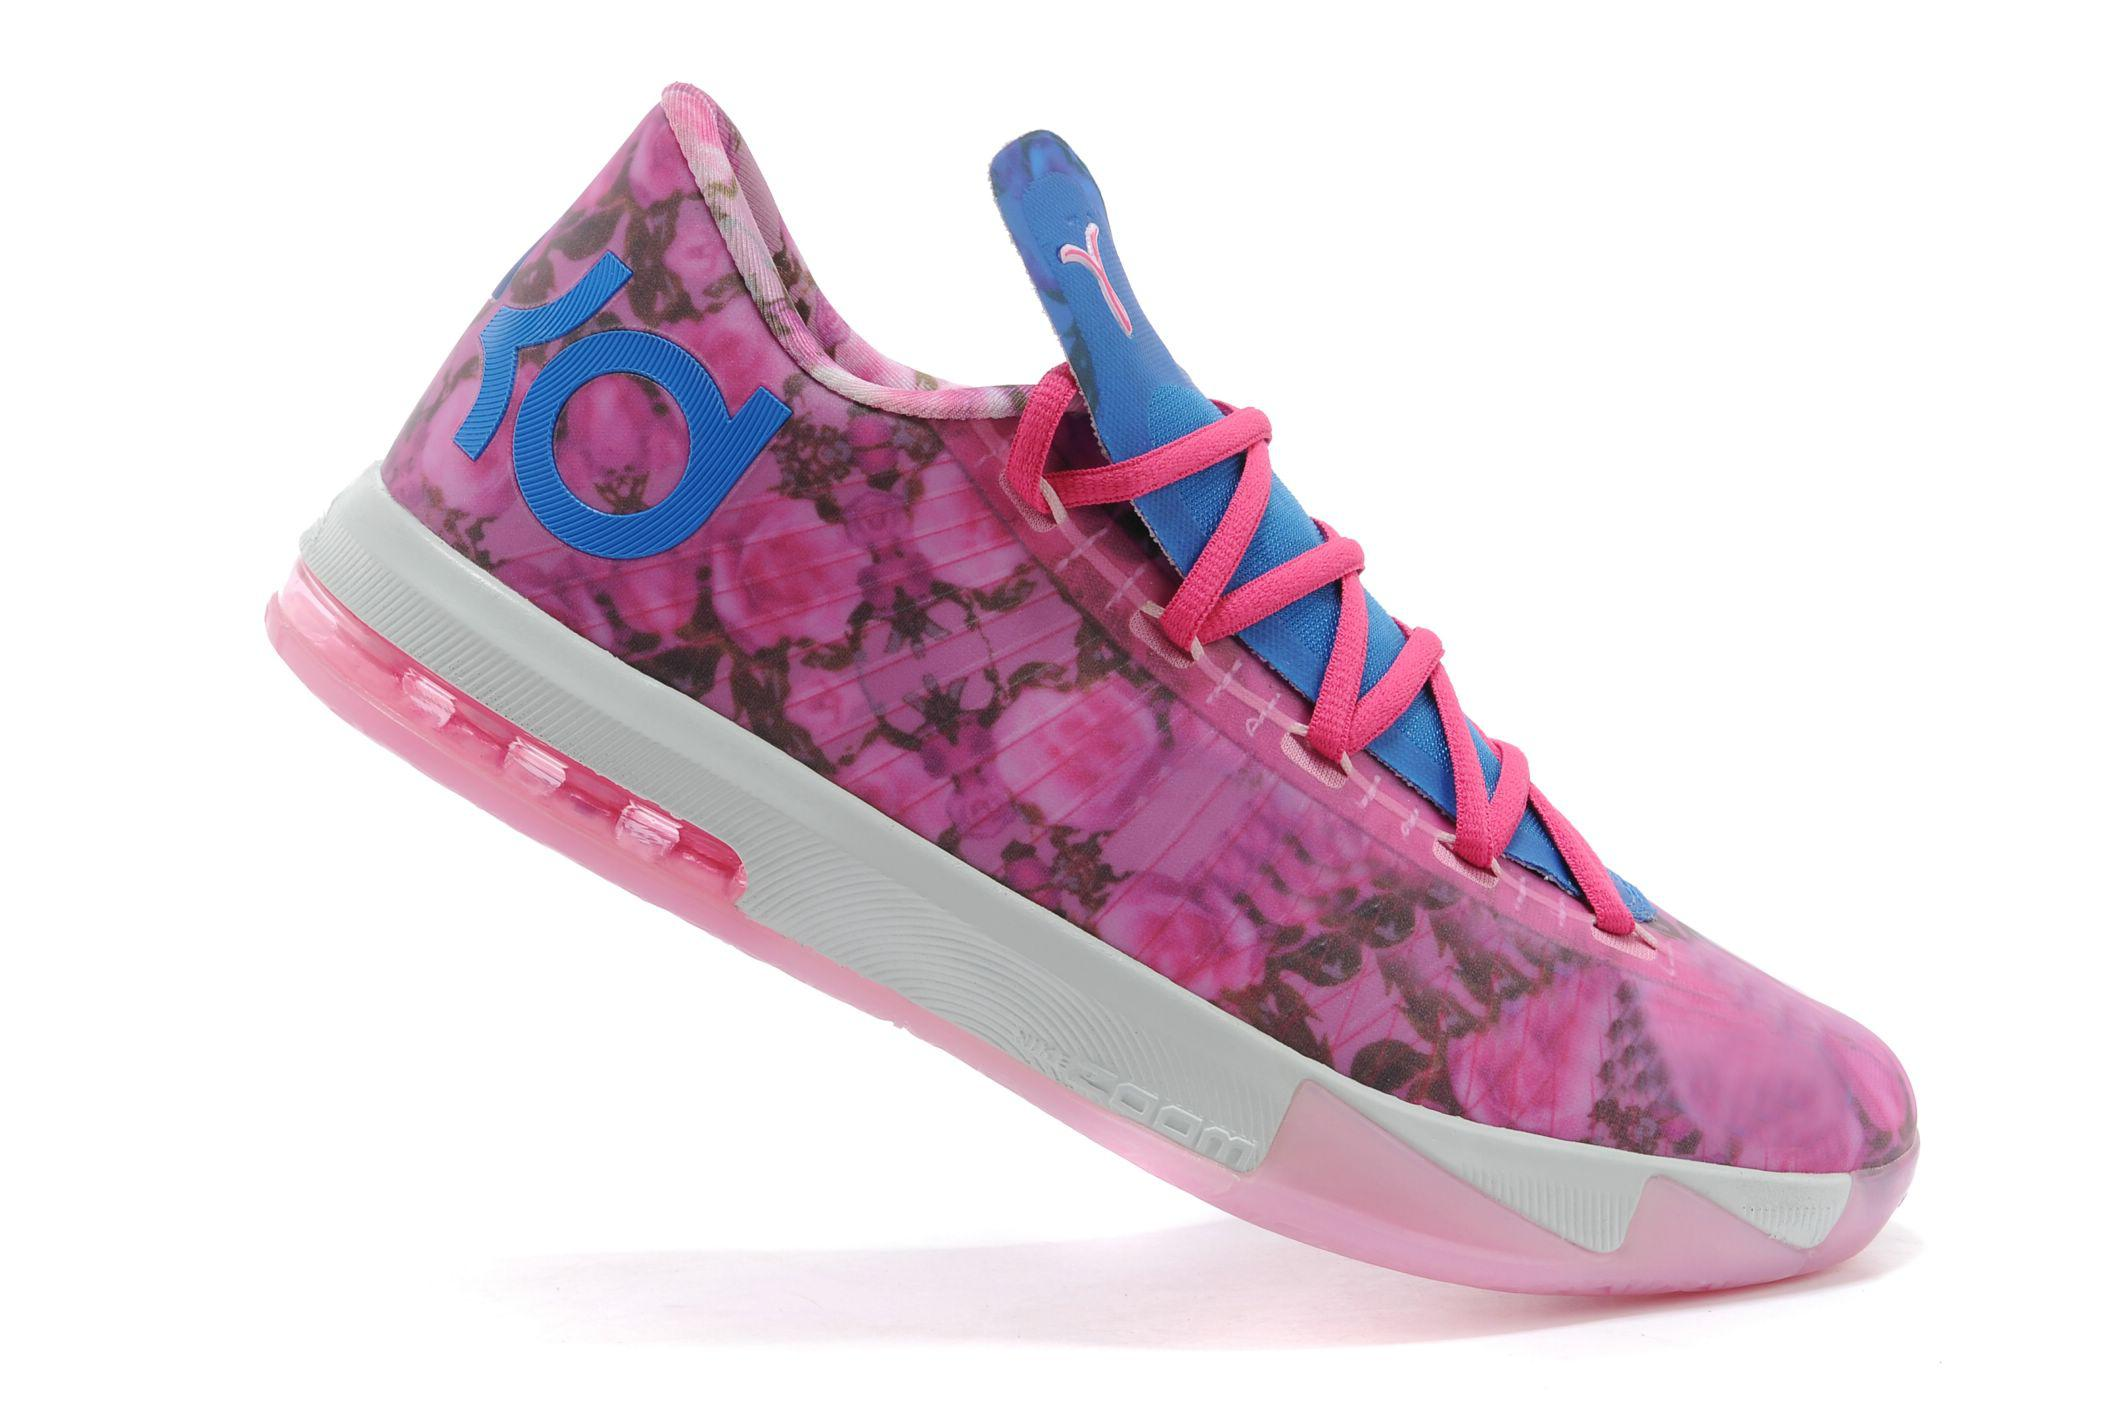 ... womens zoom kevin durant kd vi 6 supreme aunt pearl floral pink blue  colorway basketball shoes 568c010e9367